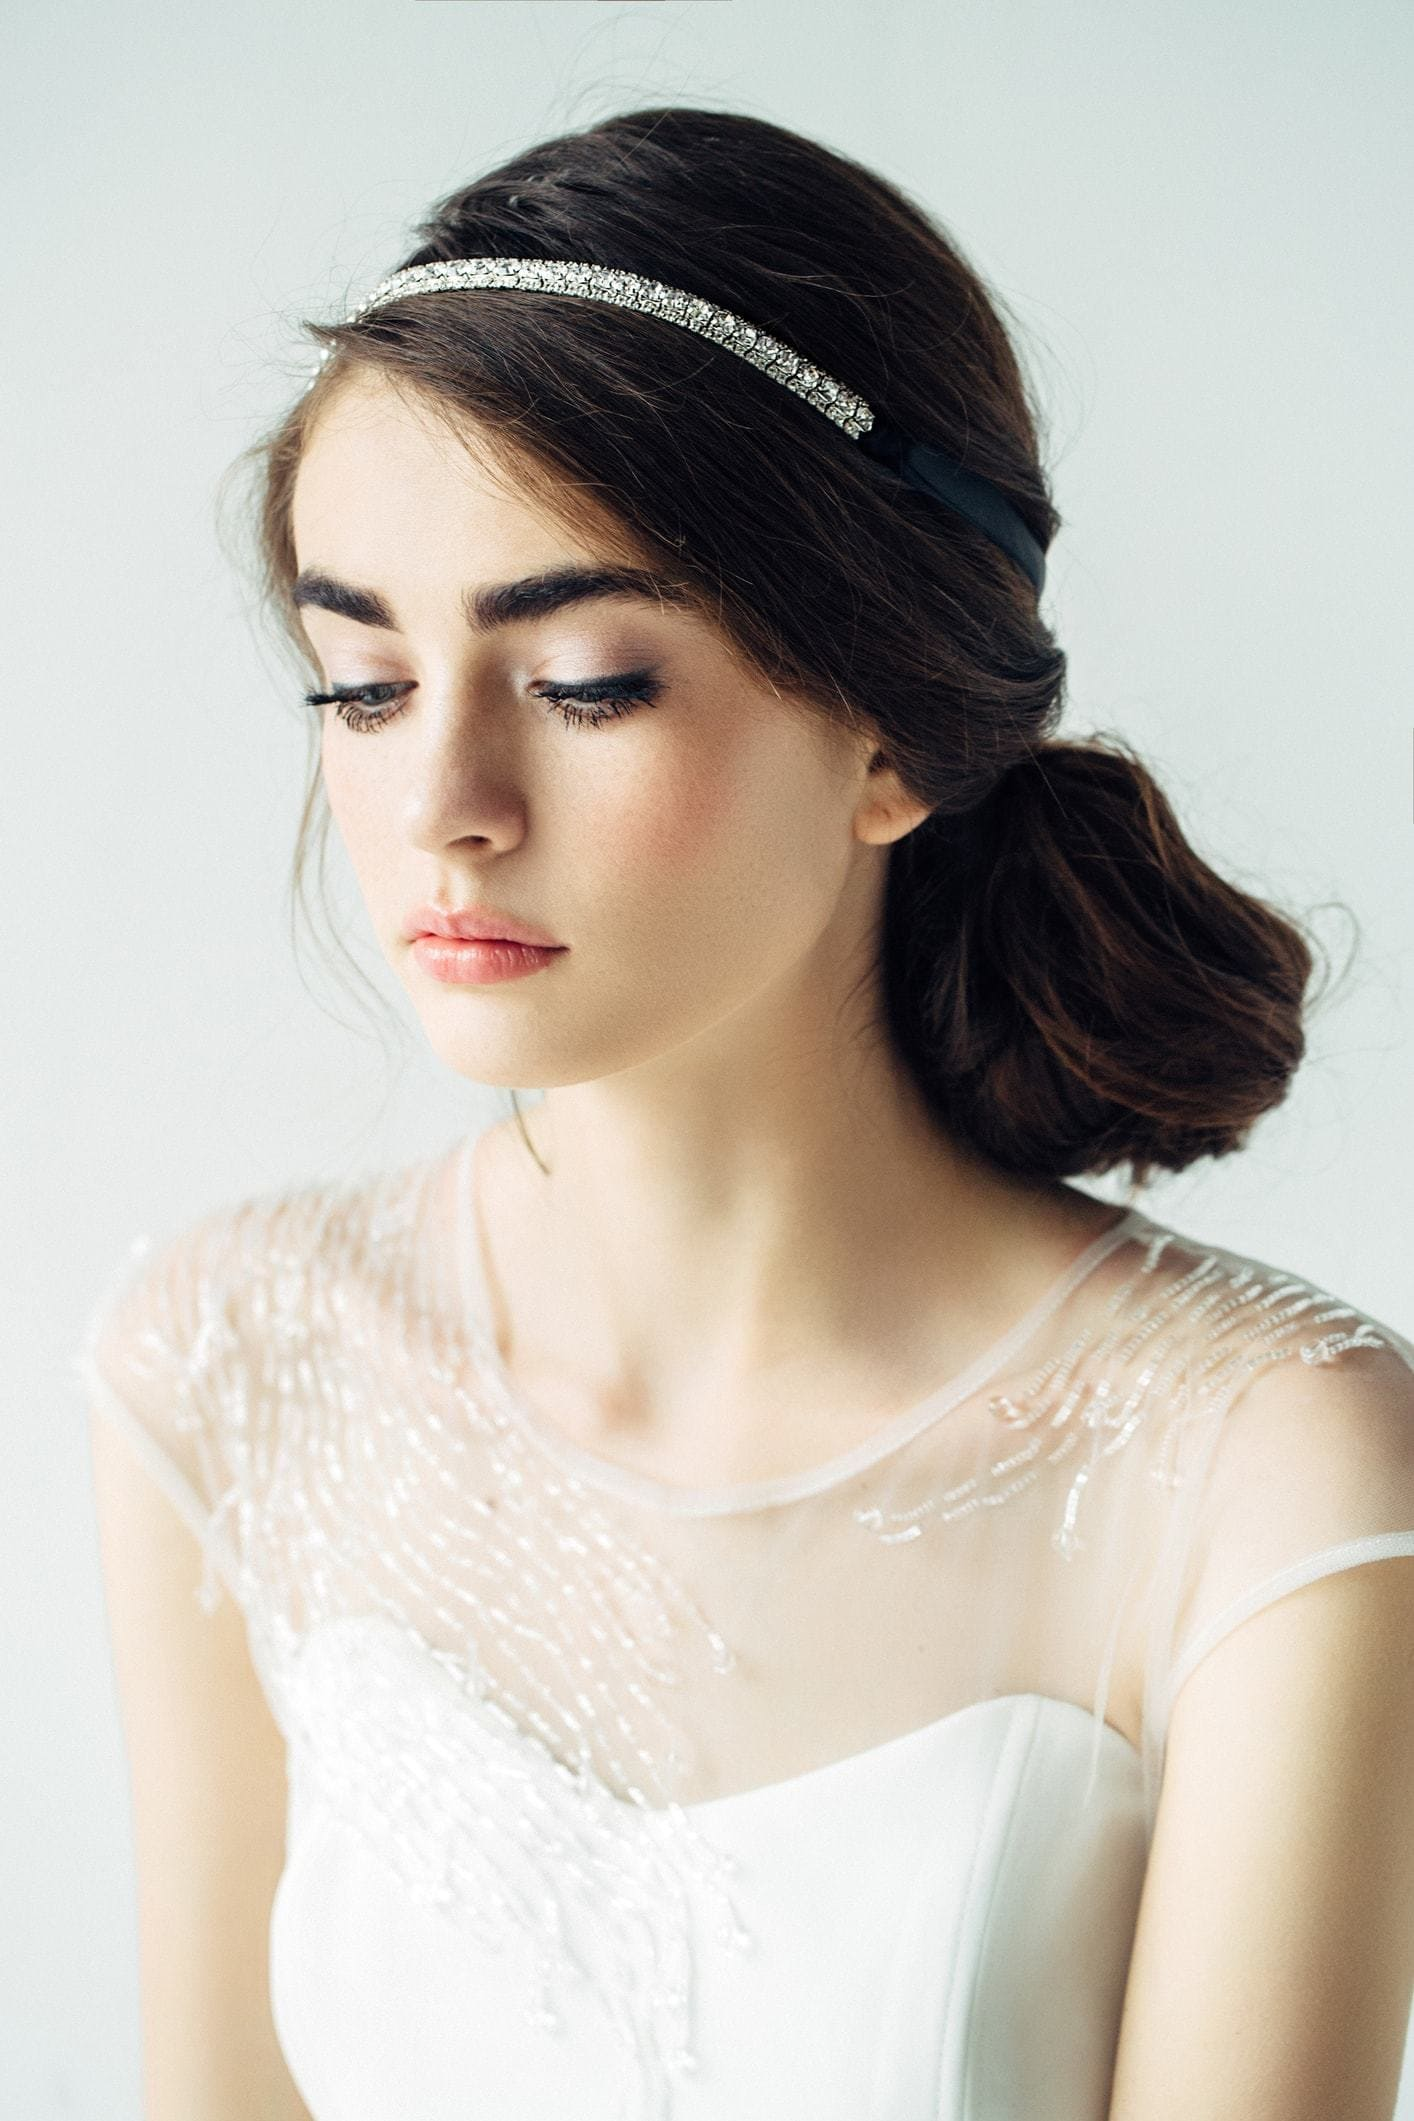 2018 Top Wedding Hairstyles For Amazing Bridal Style! 9